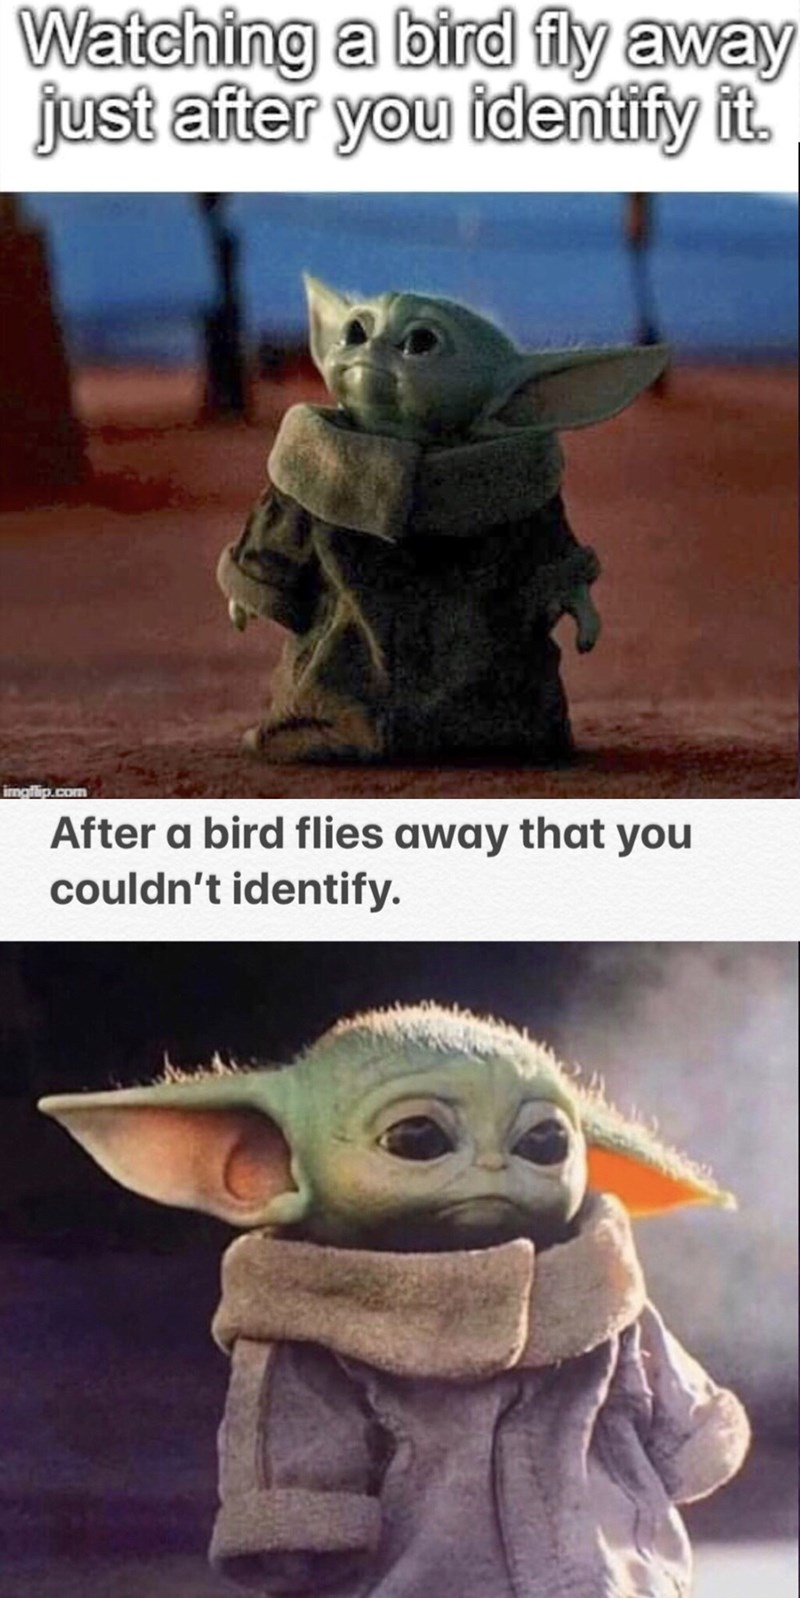 Yoda - Watching a bird fly away just after you identify it. imgflip.com After a bird flies away that you couldn't identify.